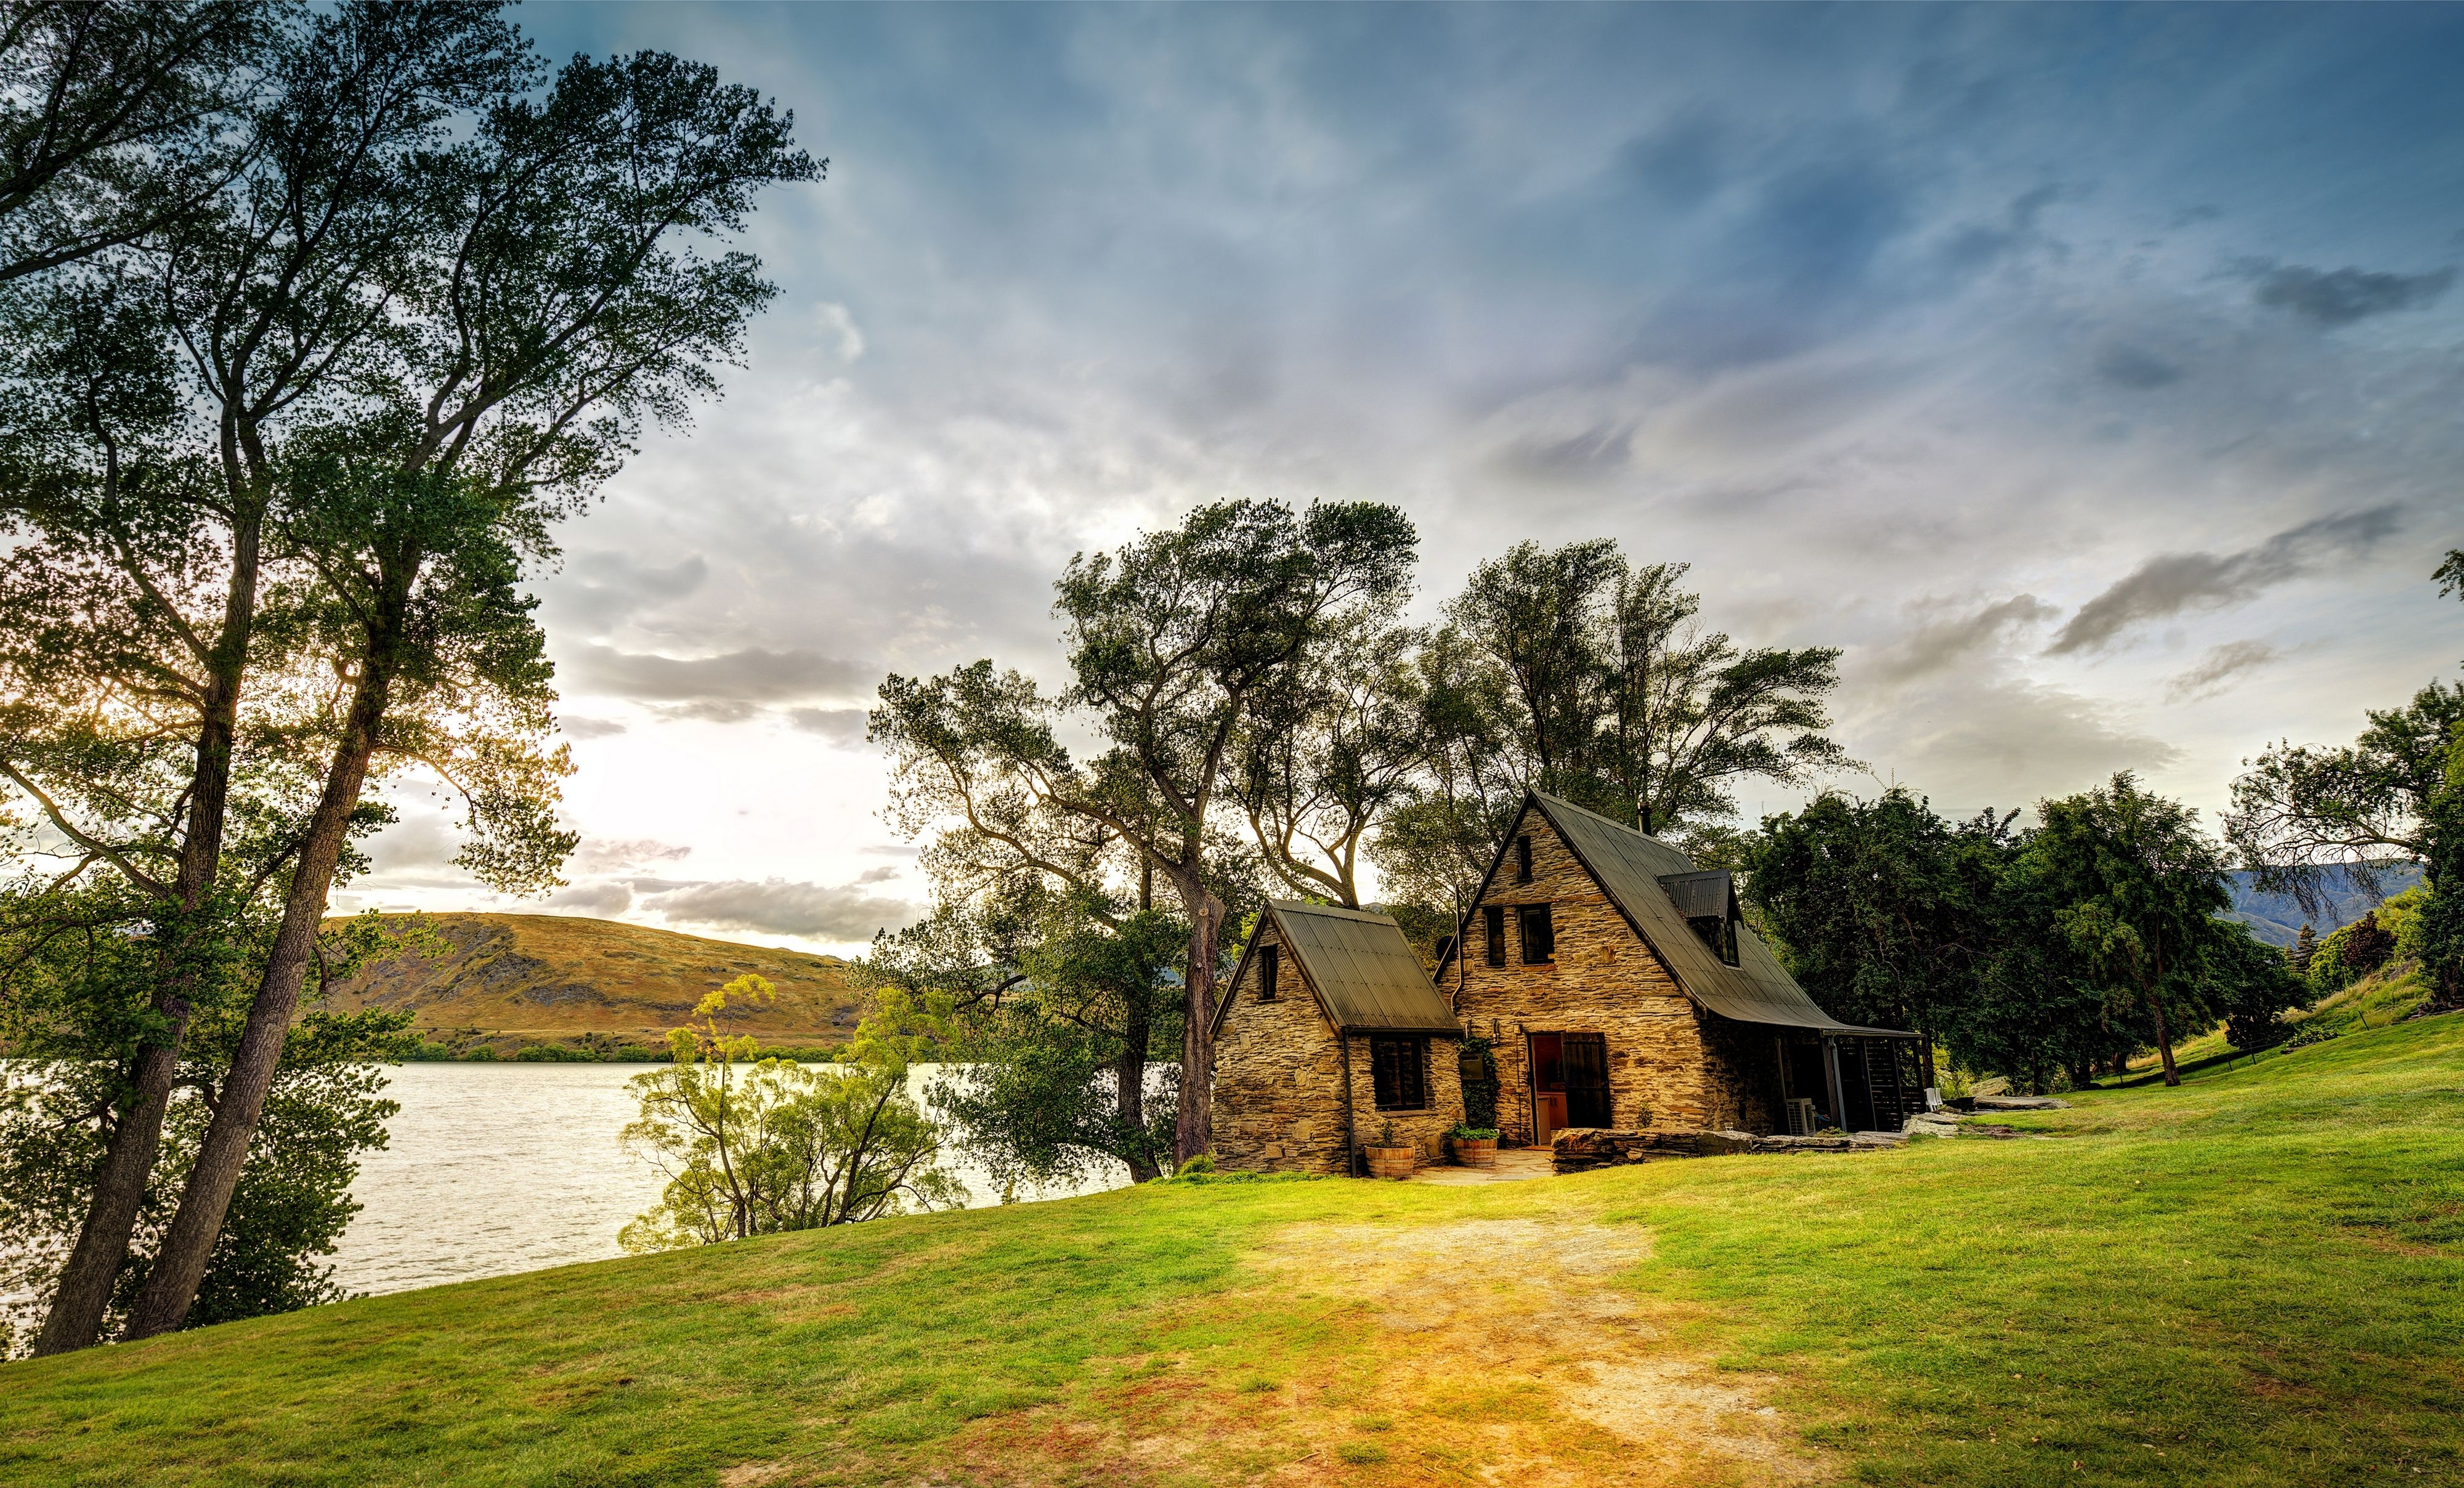 New zealand house lake trees landscape wallpaper House landscape pictures